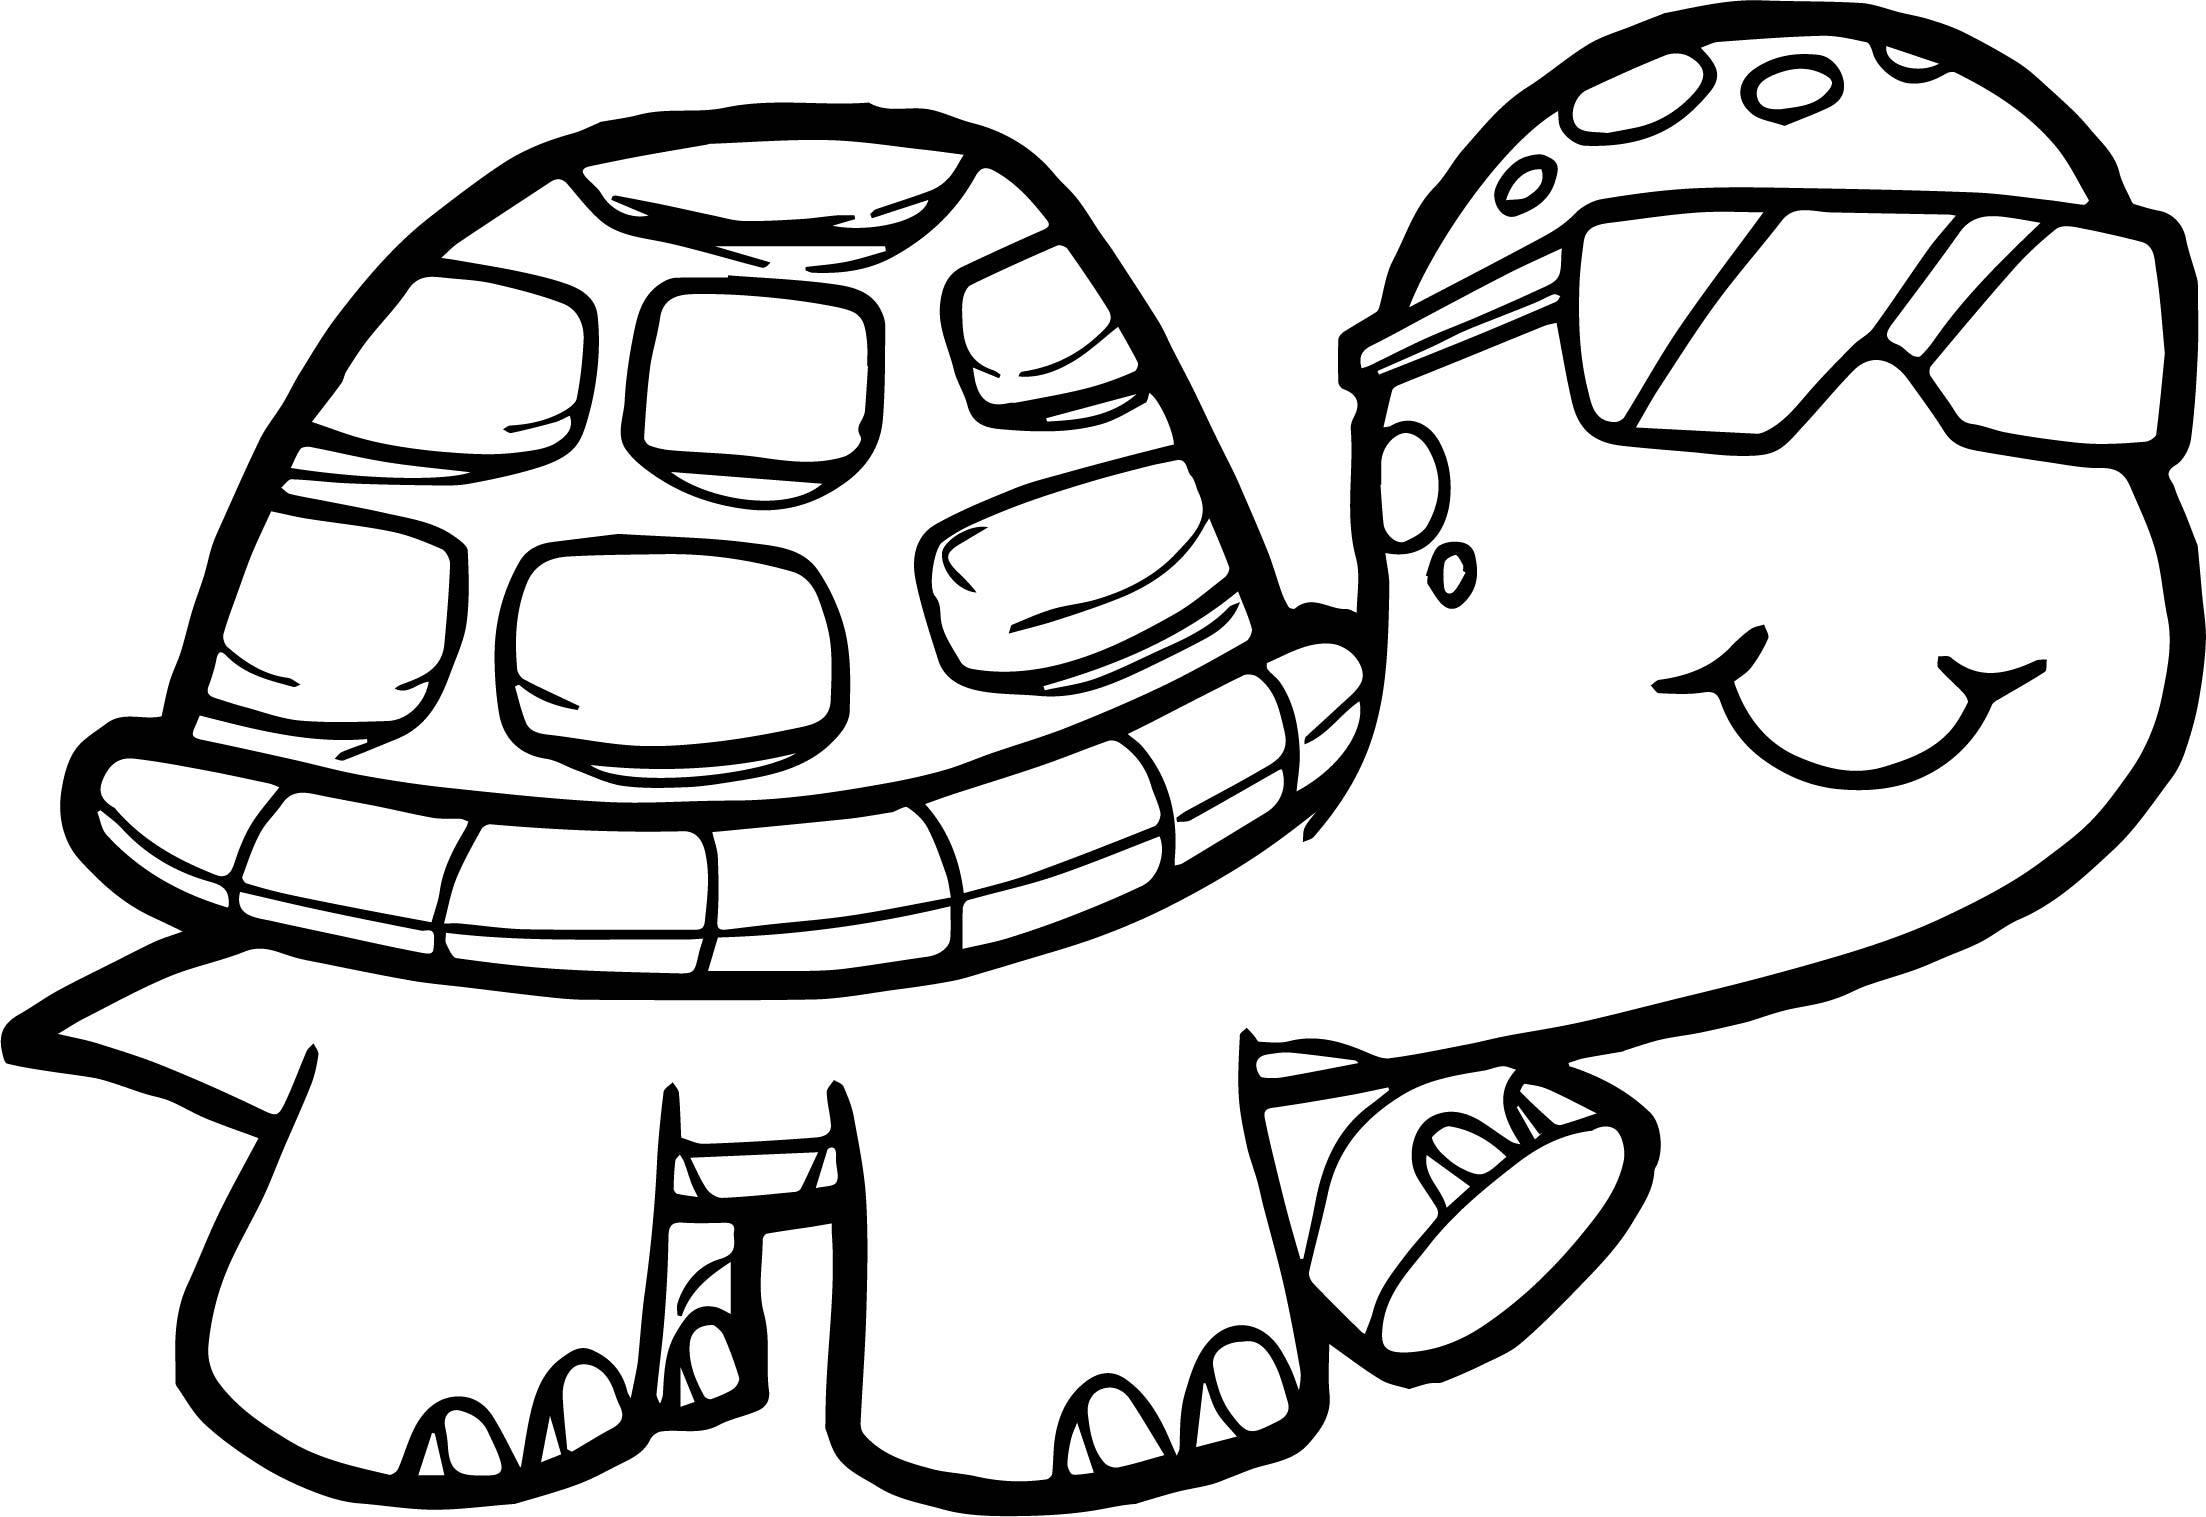 Glasses tortoise turtle coloring page for Coloring page turtle